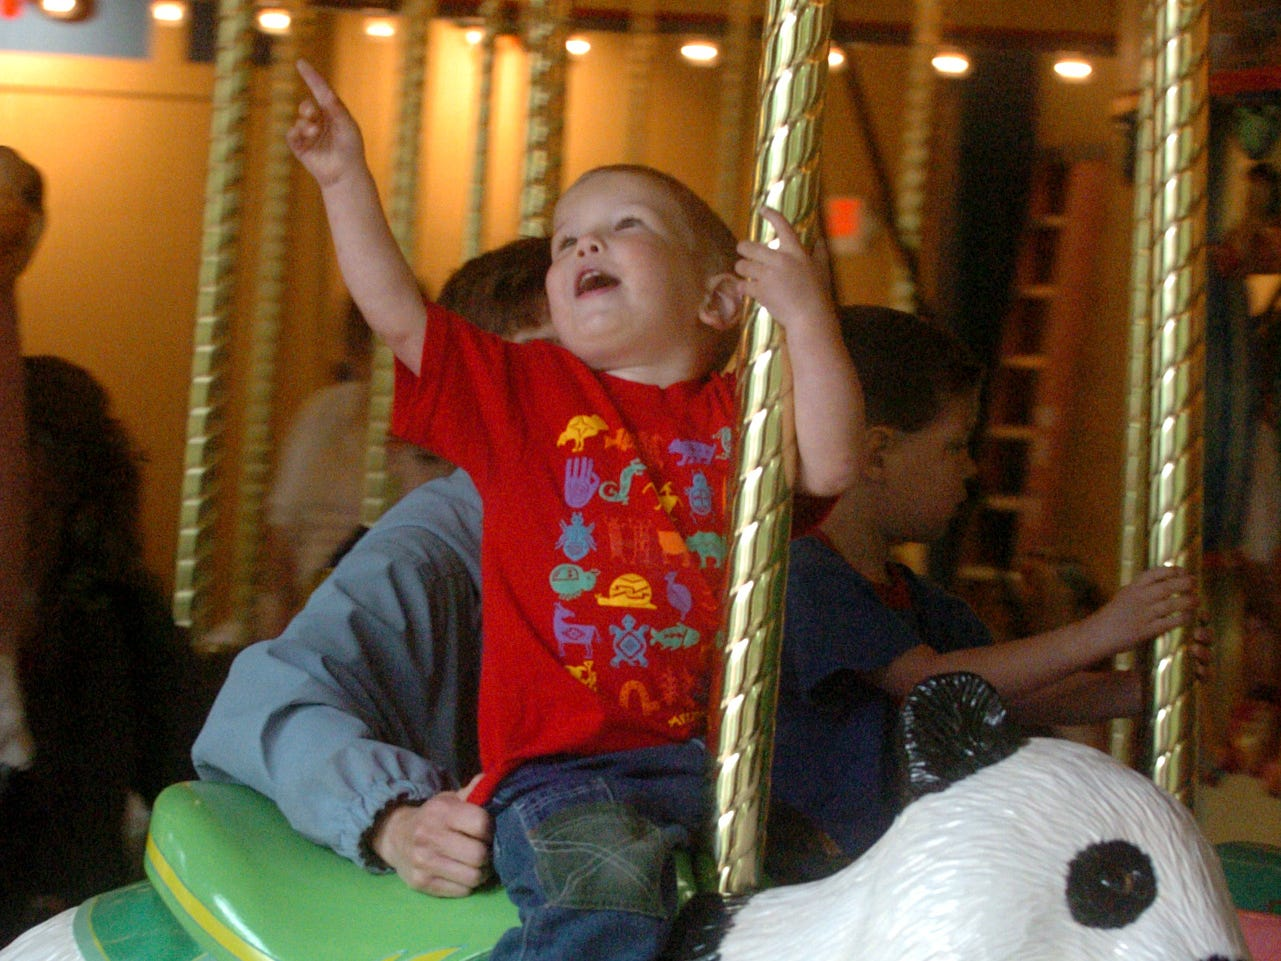 Nathan St. Peter, of Kalamazoo, checks out the lights as he rides the new Binda Conservation Carousel at Binder Park Zoo in 2007.